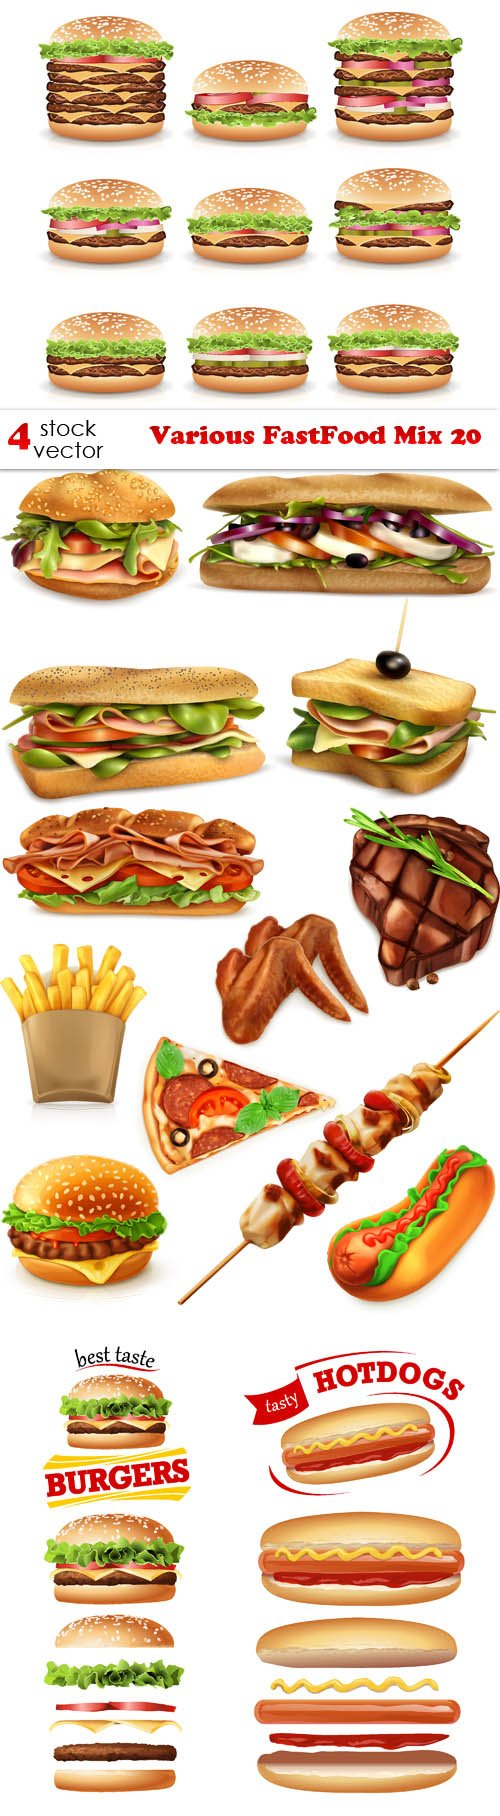 Vectors - Various FastFood Mix 20